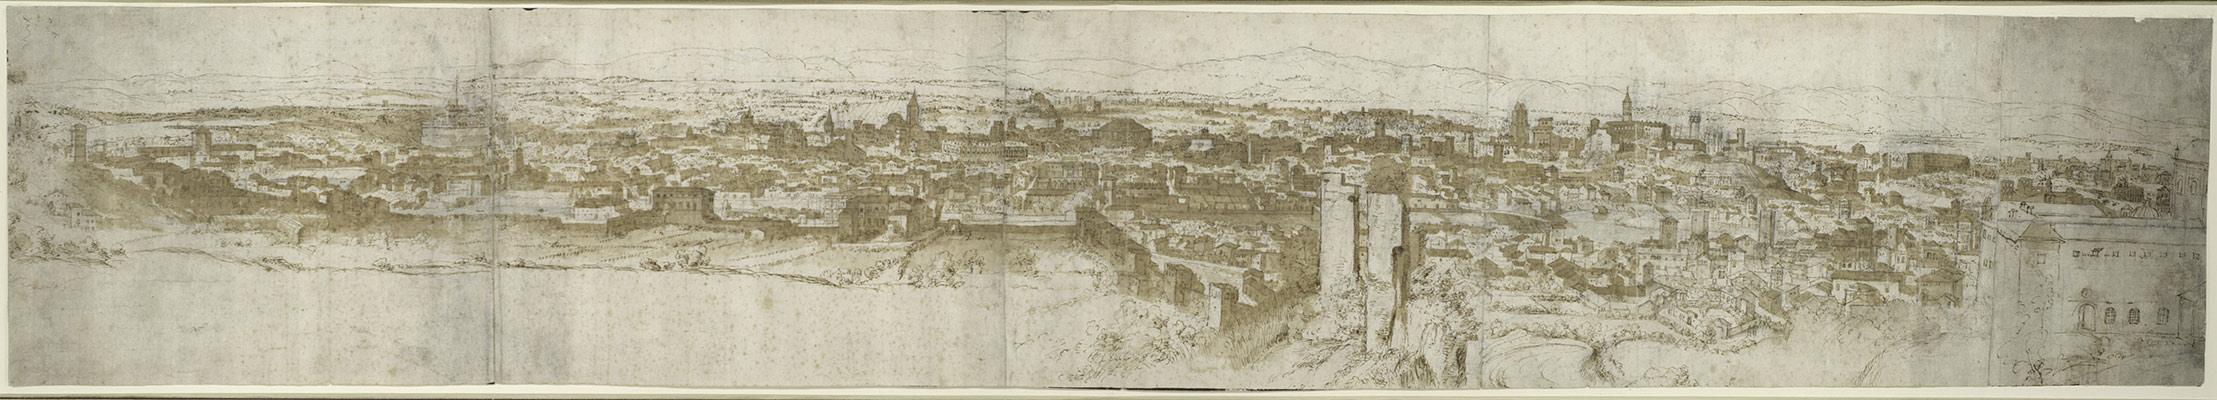 dutch and flemish artists in rome 1500 1600 essay heilbrunn view of rome from the janiculum in the south west verso sketch of